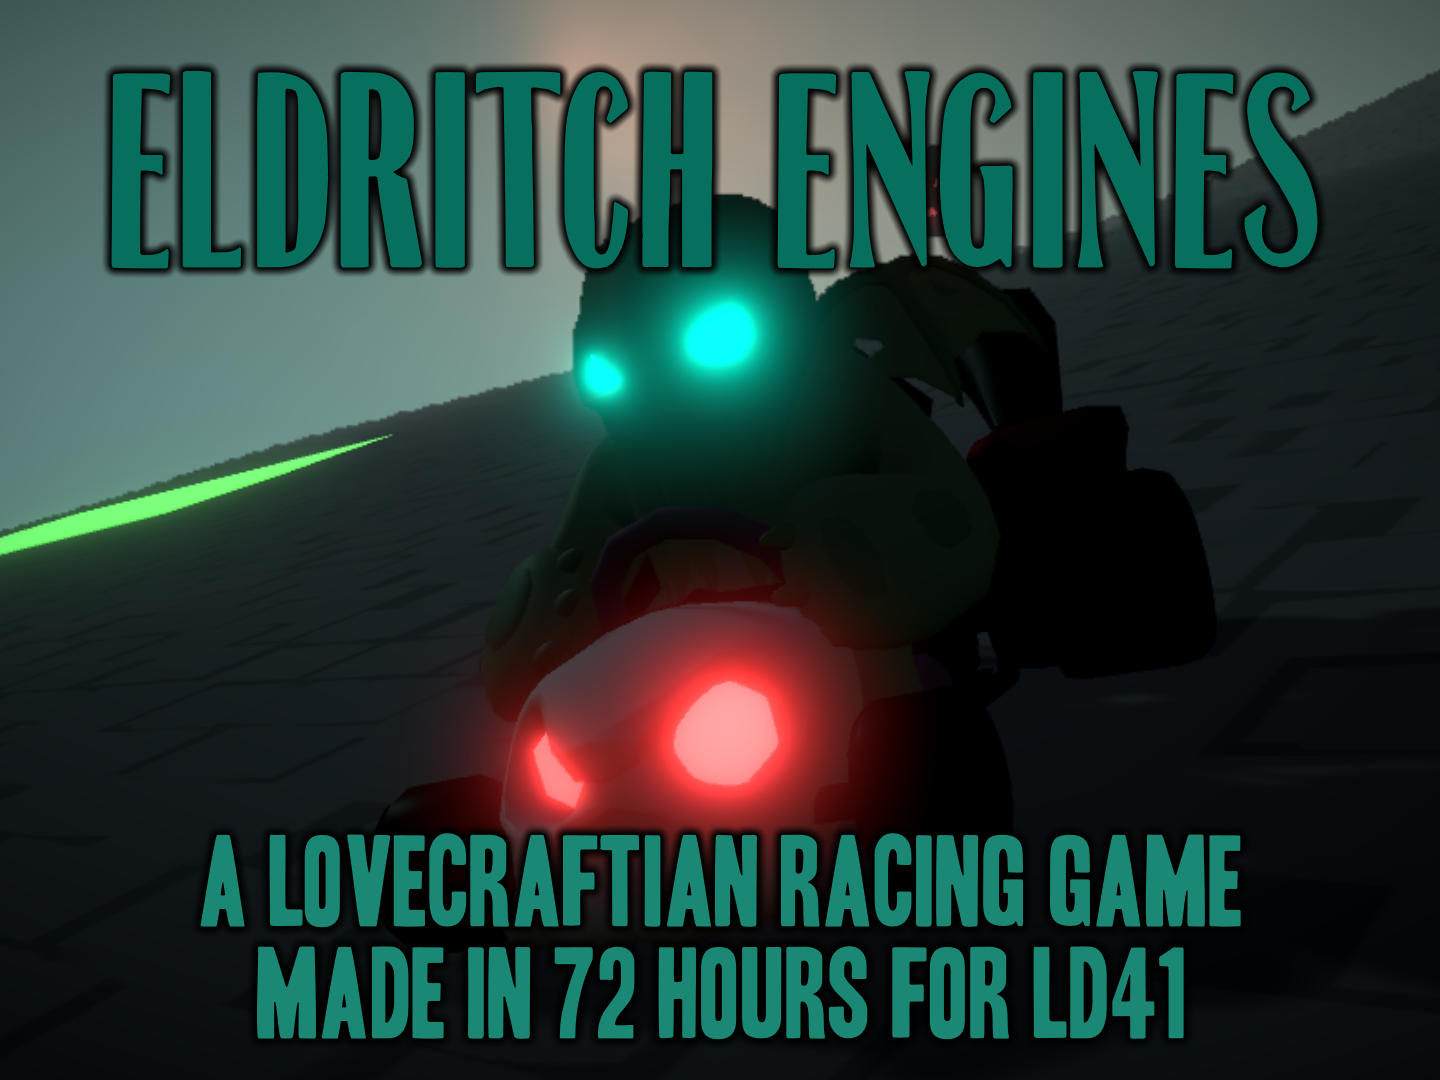 Eldritch Engines cover